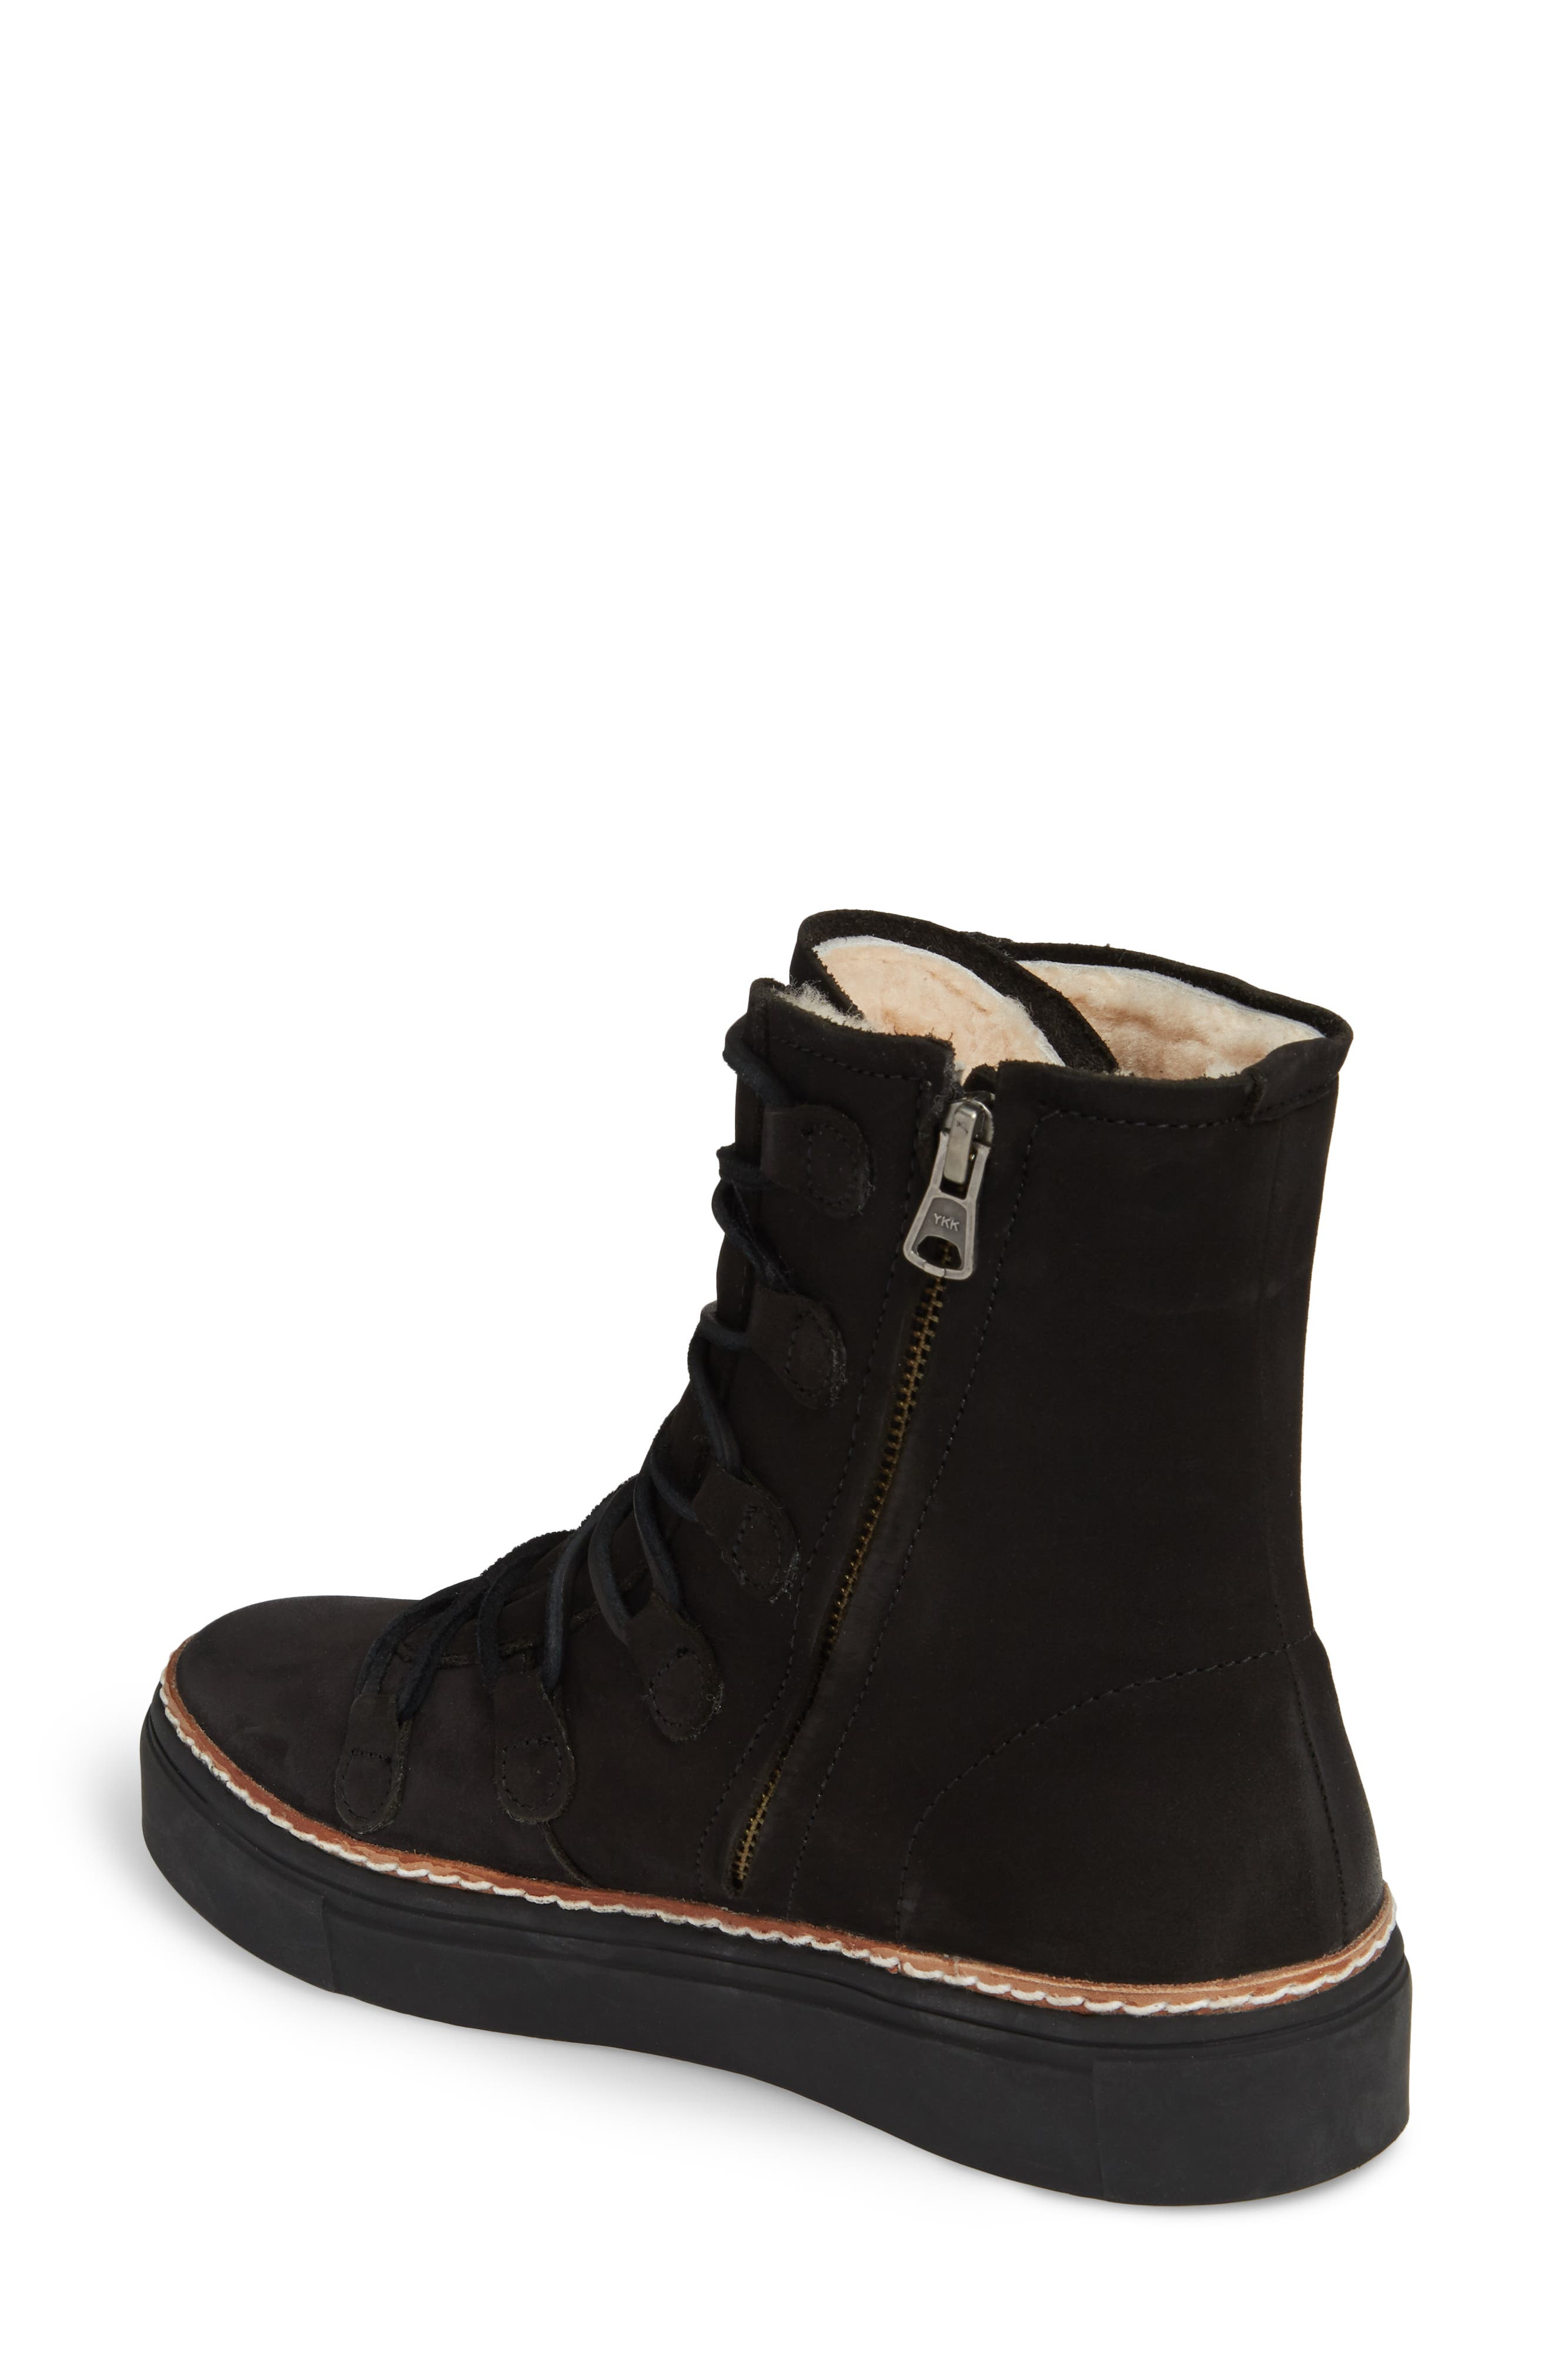 OL26 Genuine Shearling Lined Lace-Up Bootie,                             Alternate thumbnail 2, color,                             Black Nubuck Leather